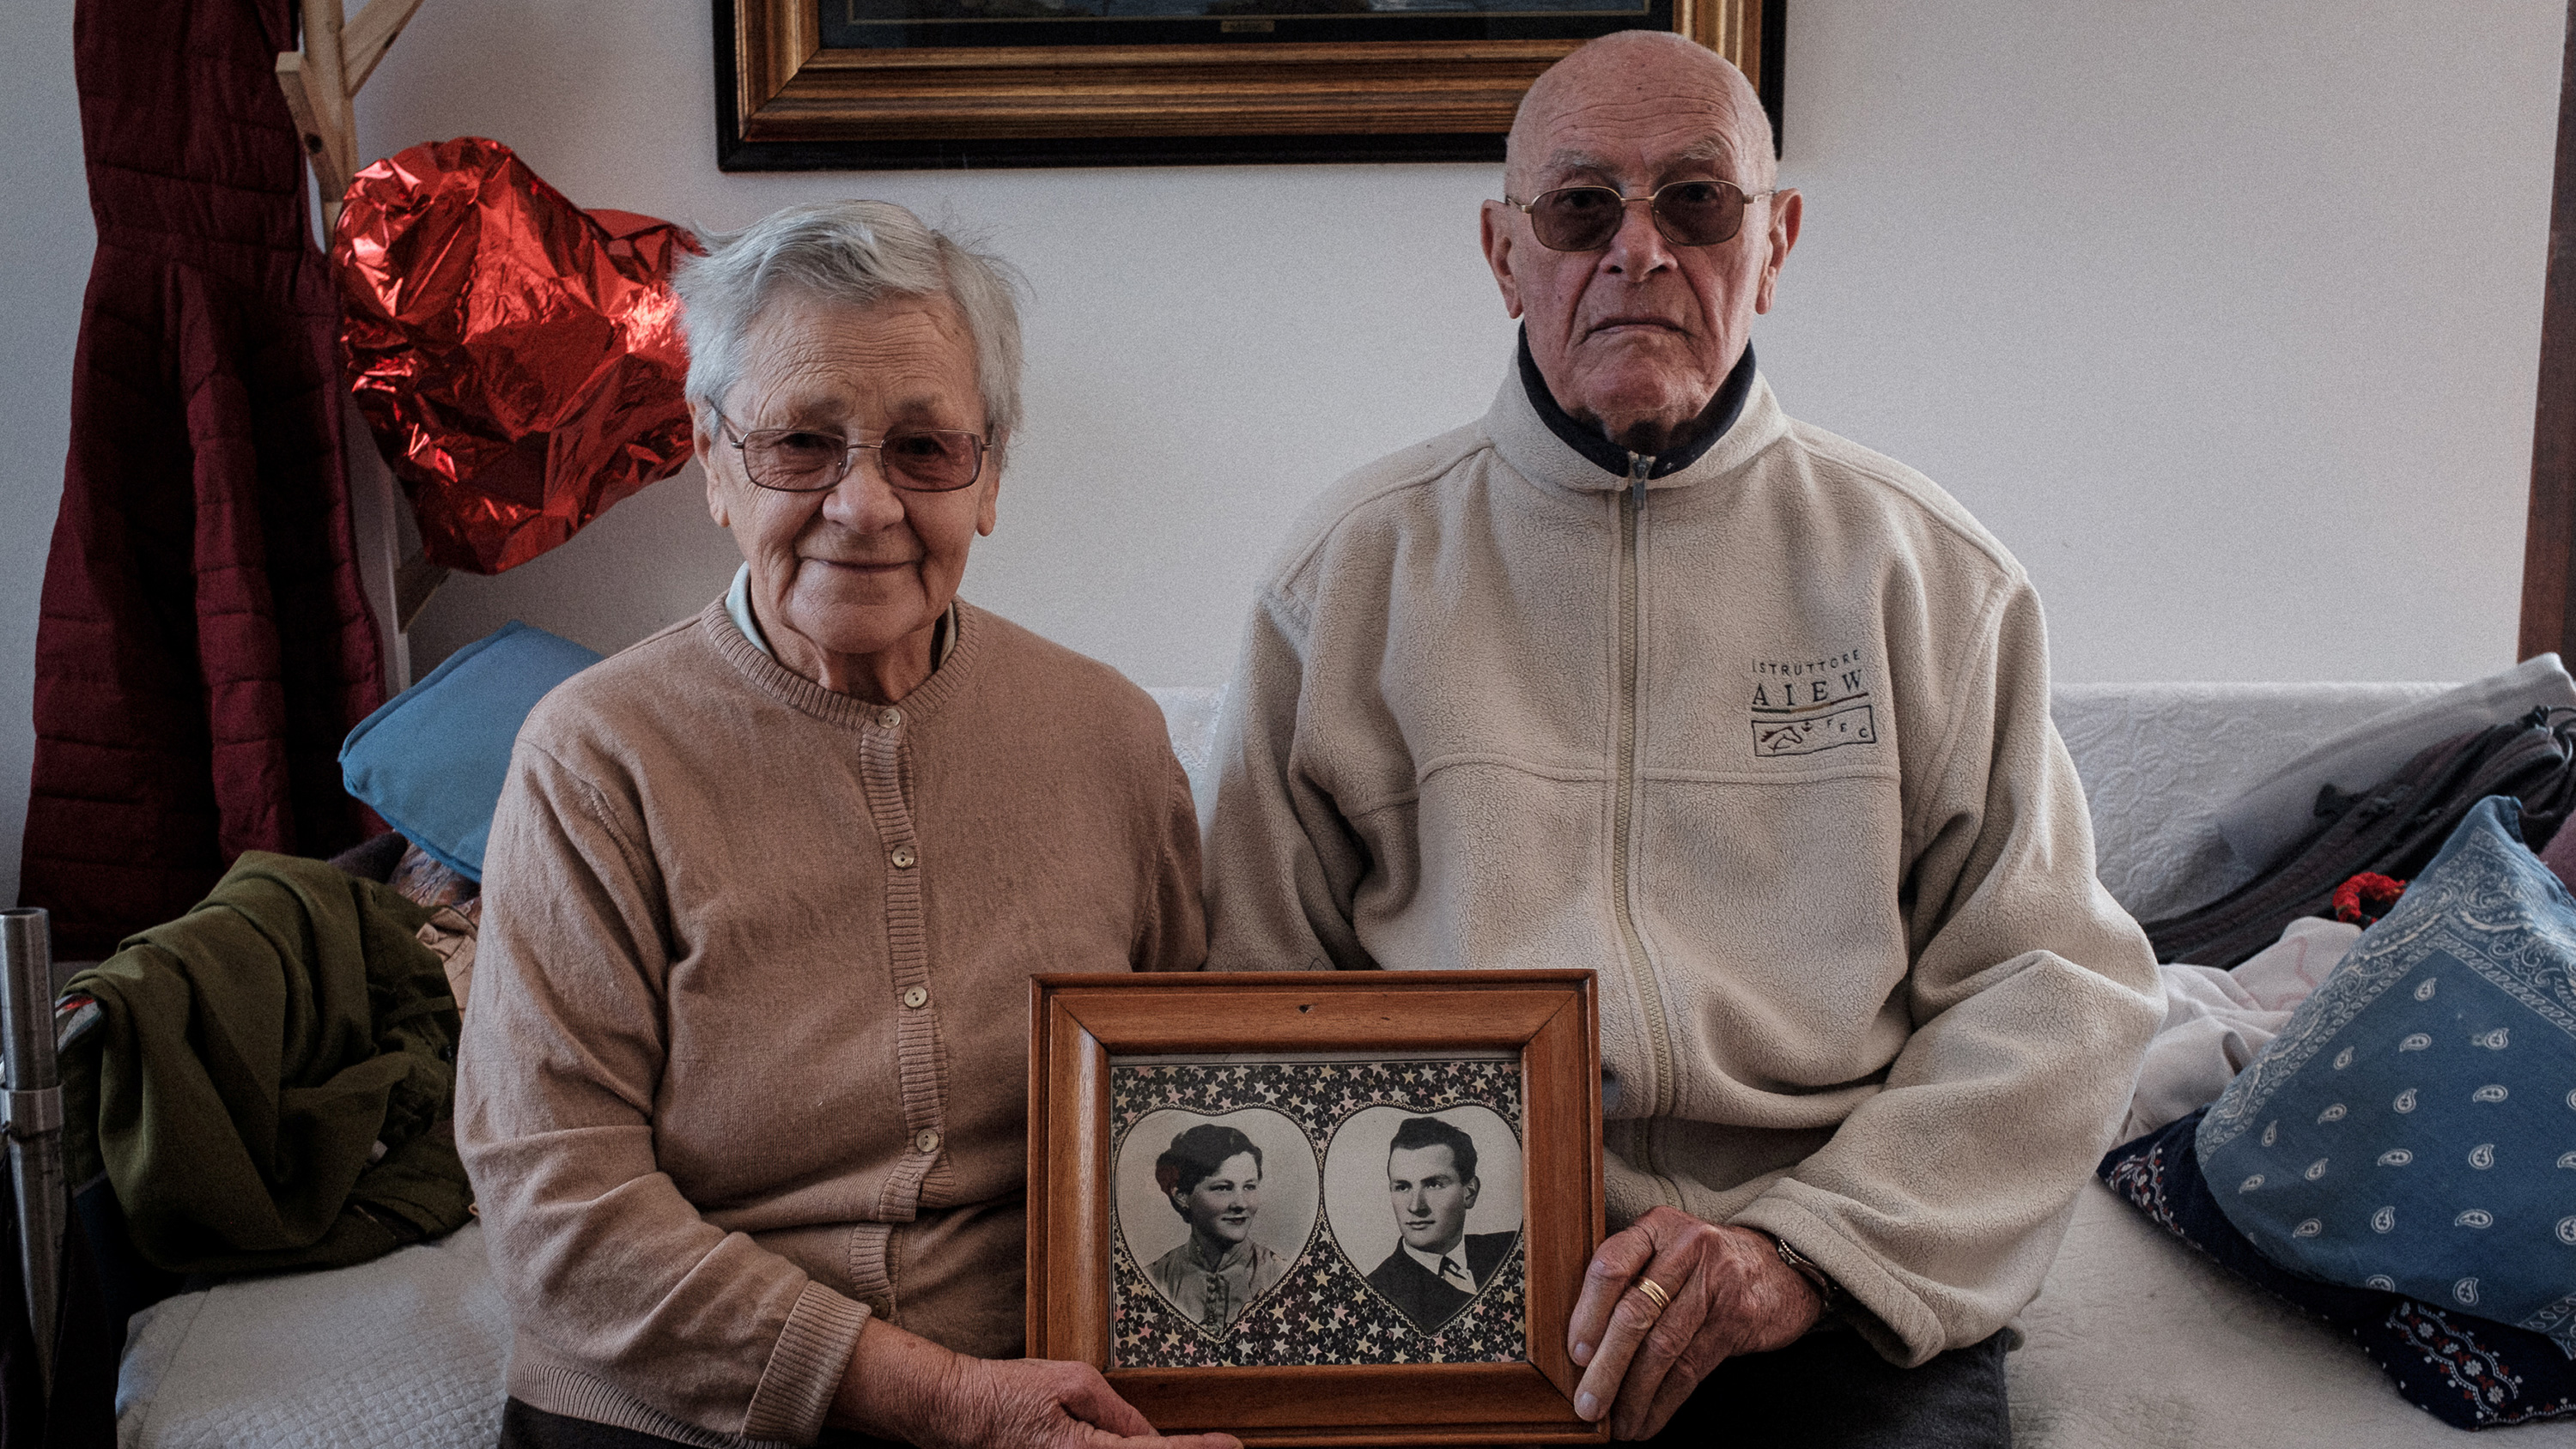 Picture shows the elderly couple sitting together holding a picture of the two of them taken many years before. They are a cute couple.